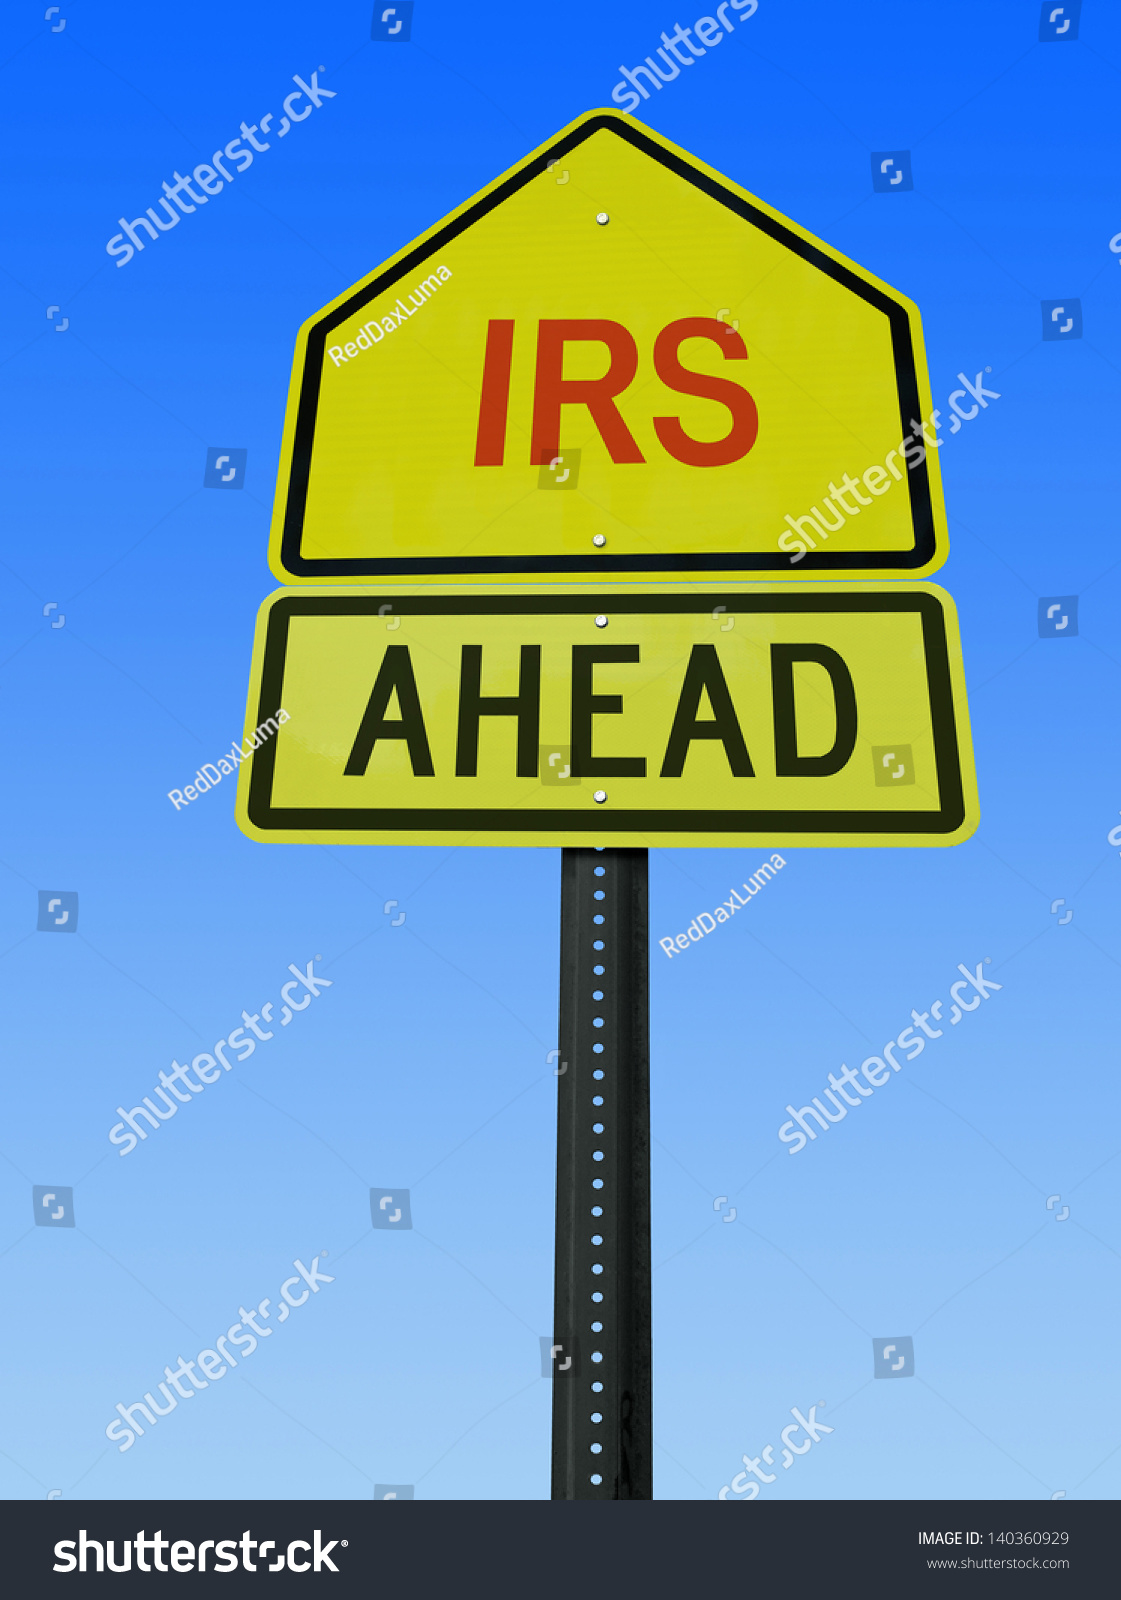 Do option trades get reported to irs